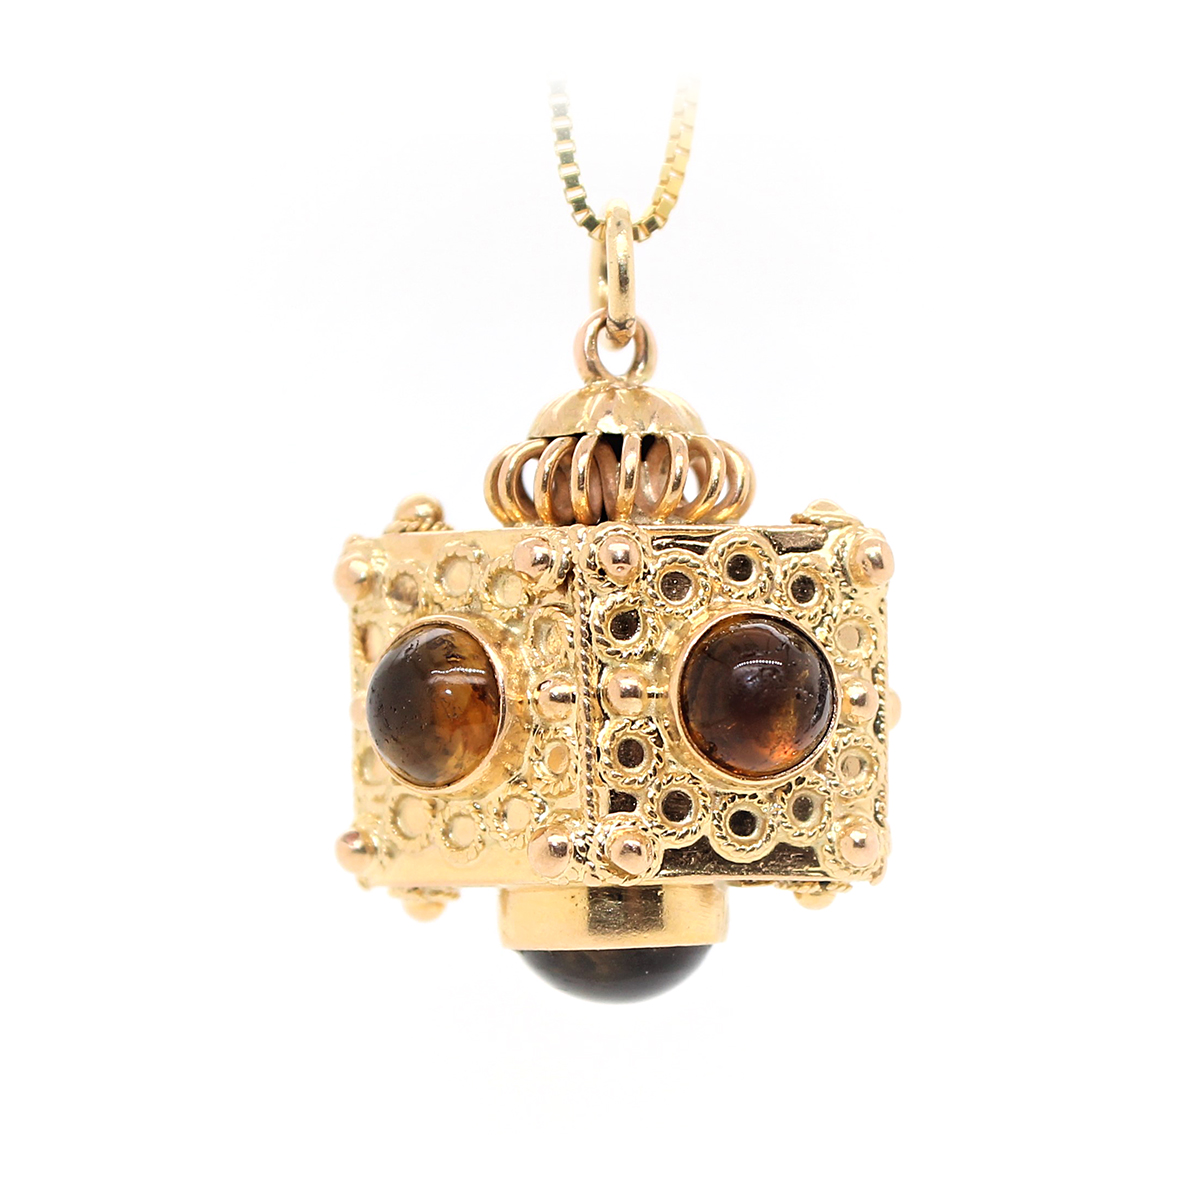 Vintage 18 Karat Yellow Gold Citrine Six Sided Pendant Necklace